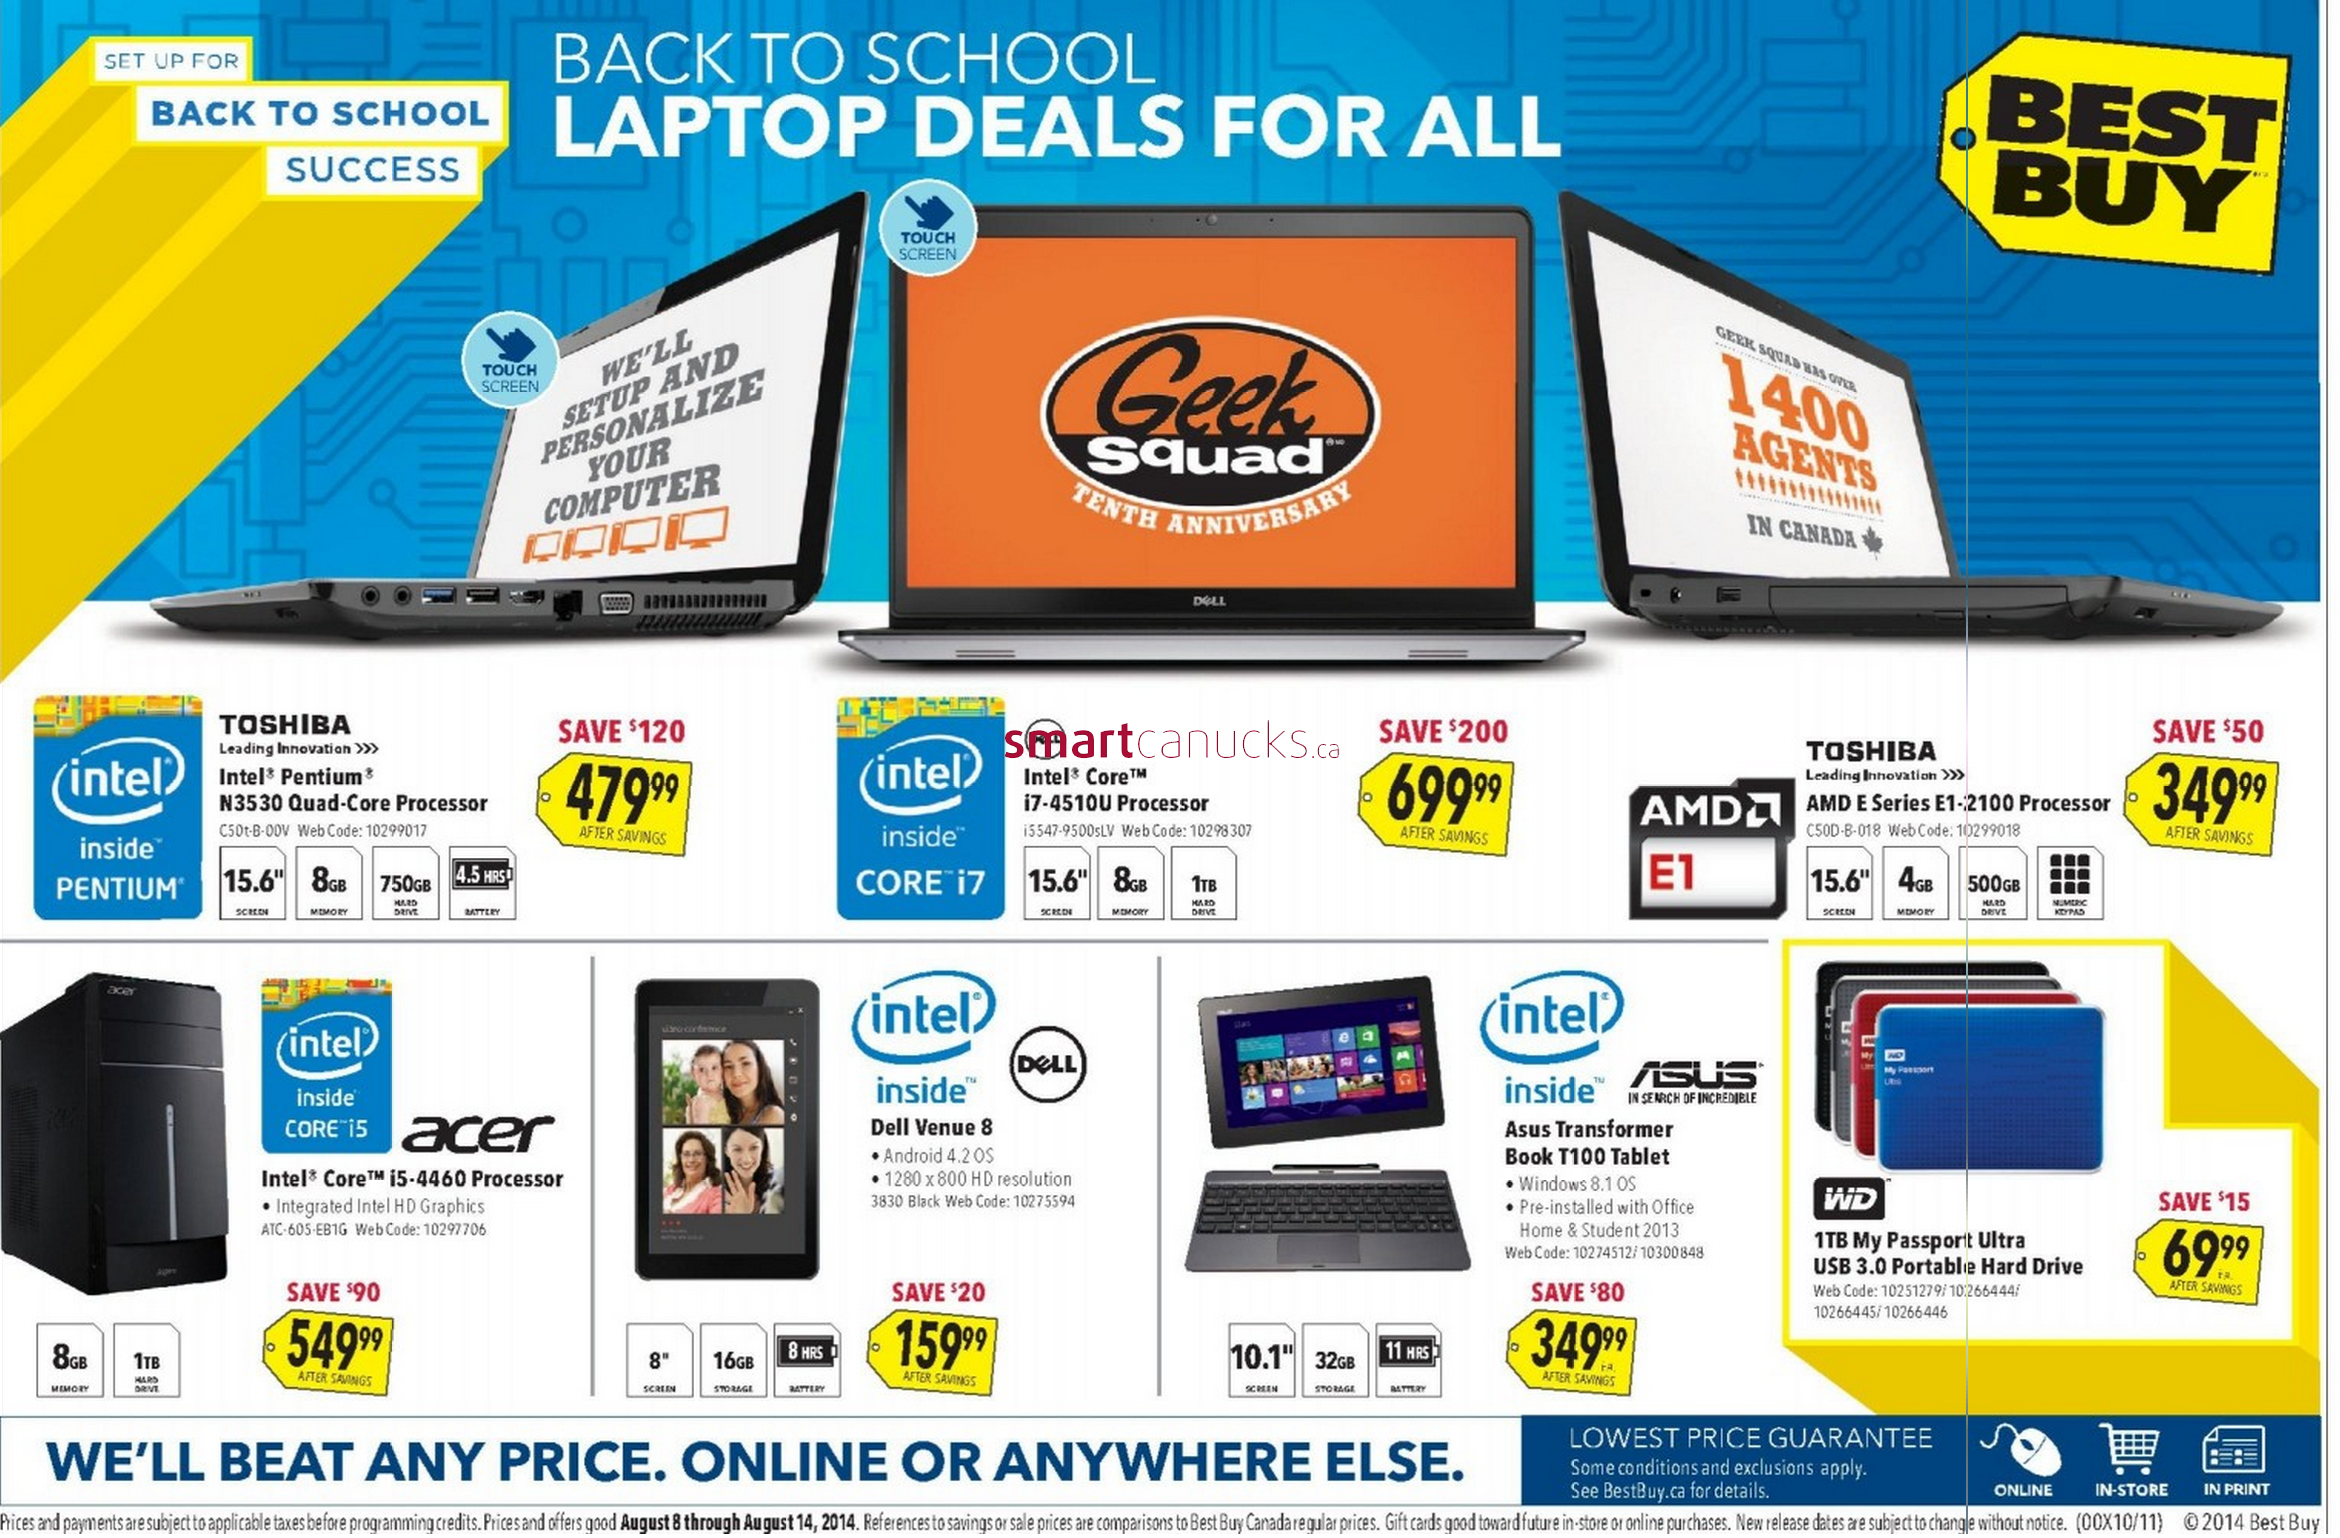 Best buy canada flyer august 8 to 14 best buy canada flyer august 8 to 14 greentooth Choice Image